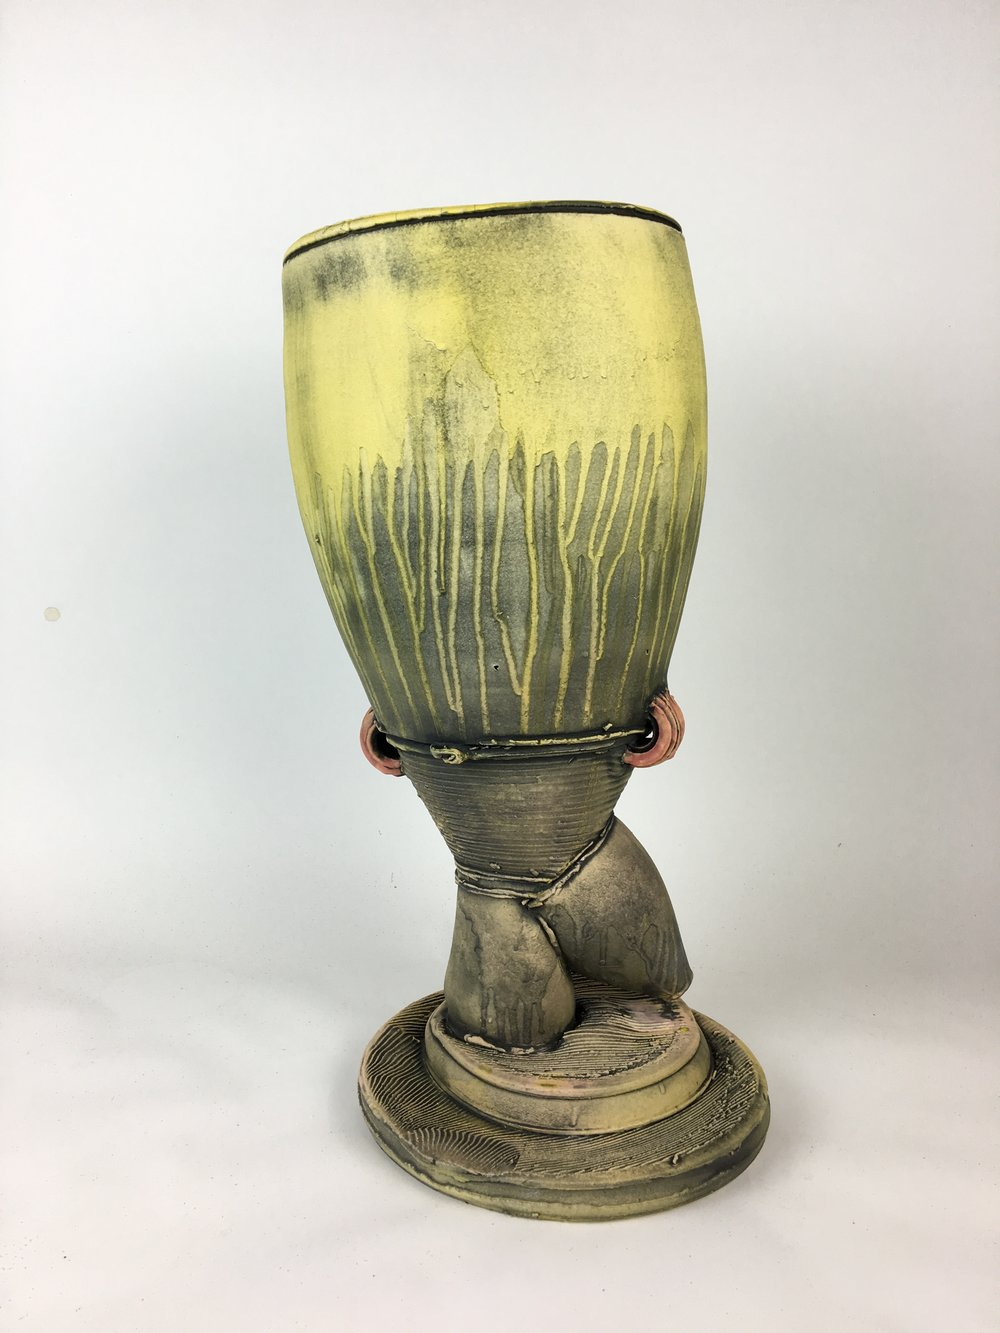 Gold Cup Participation Award